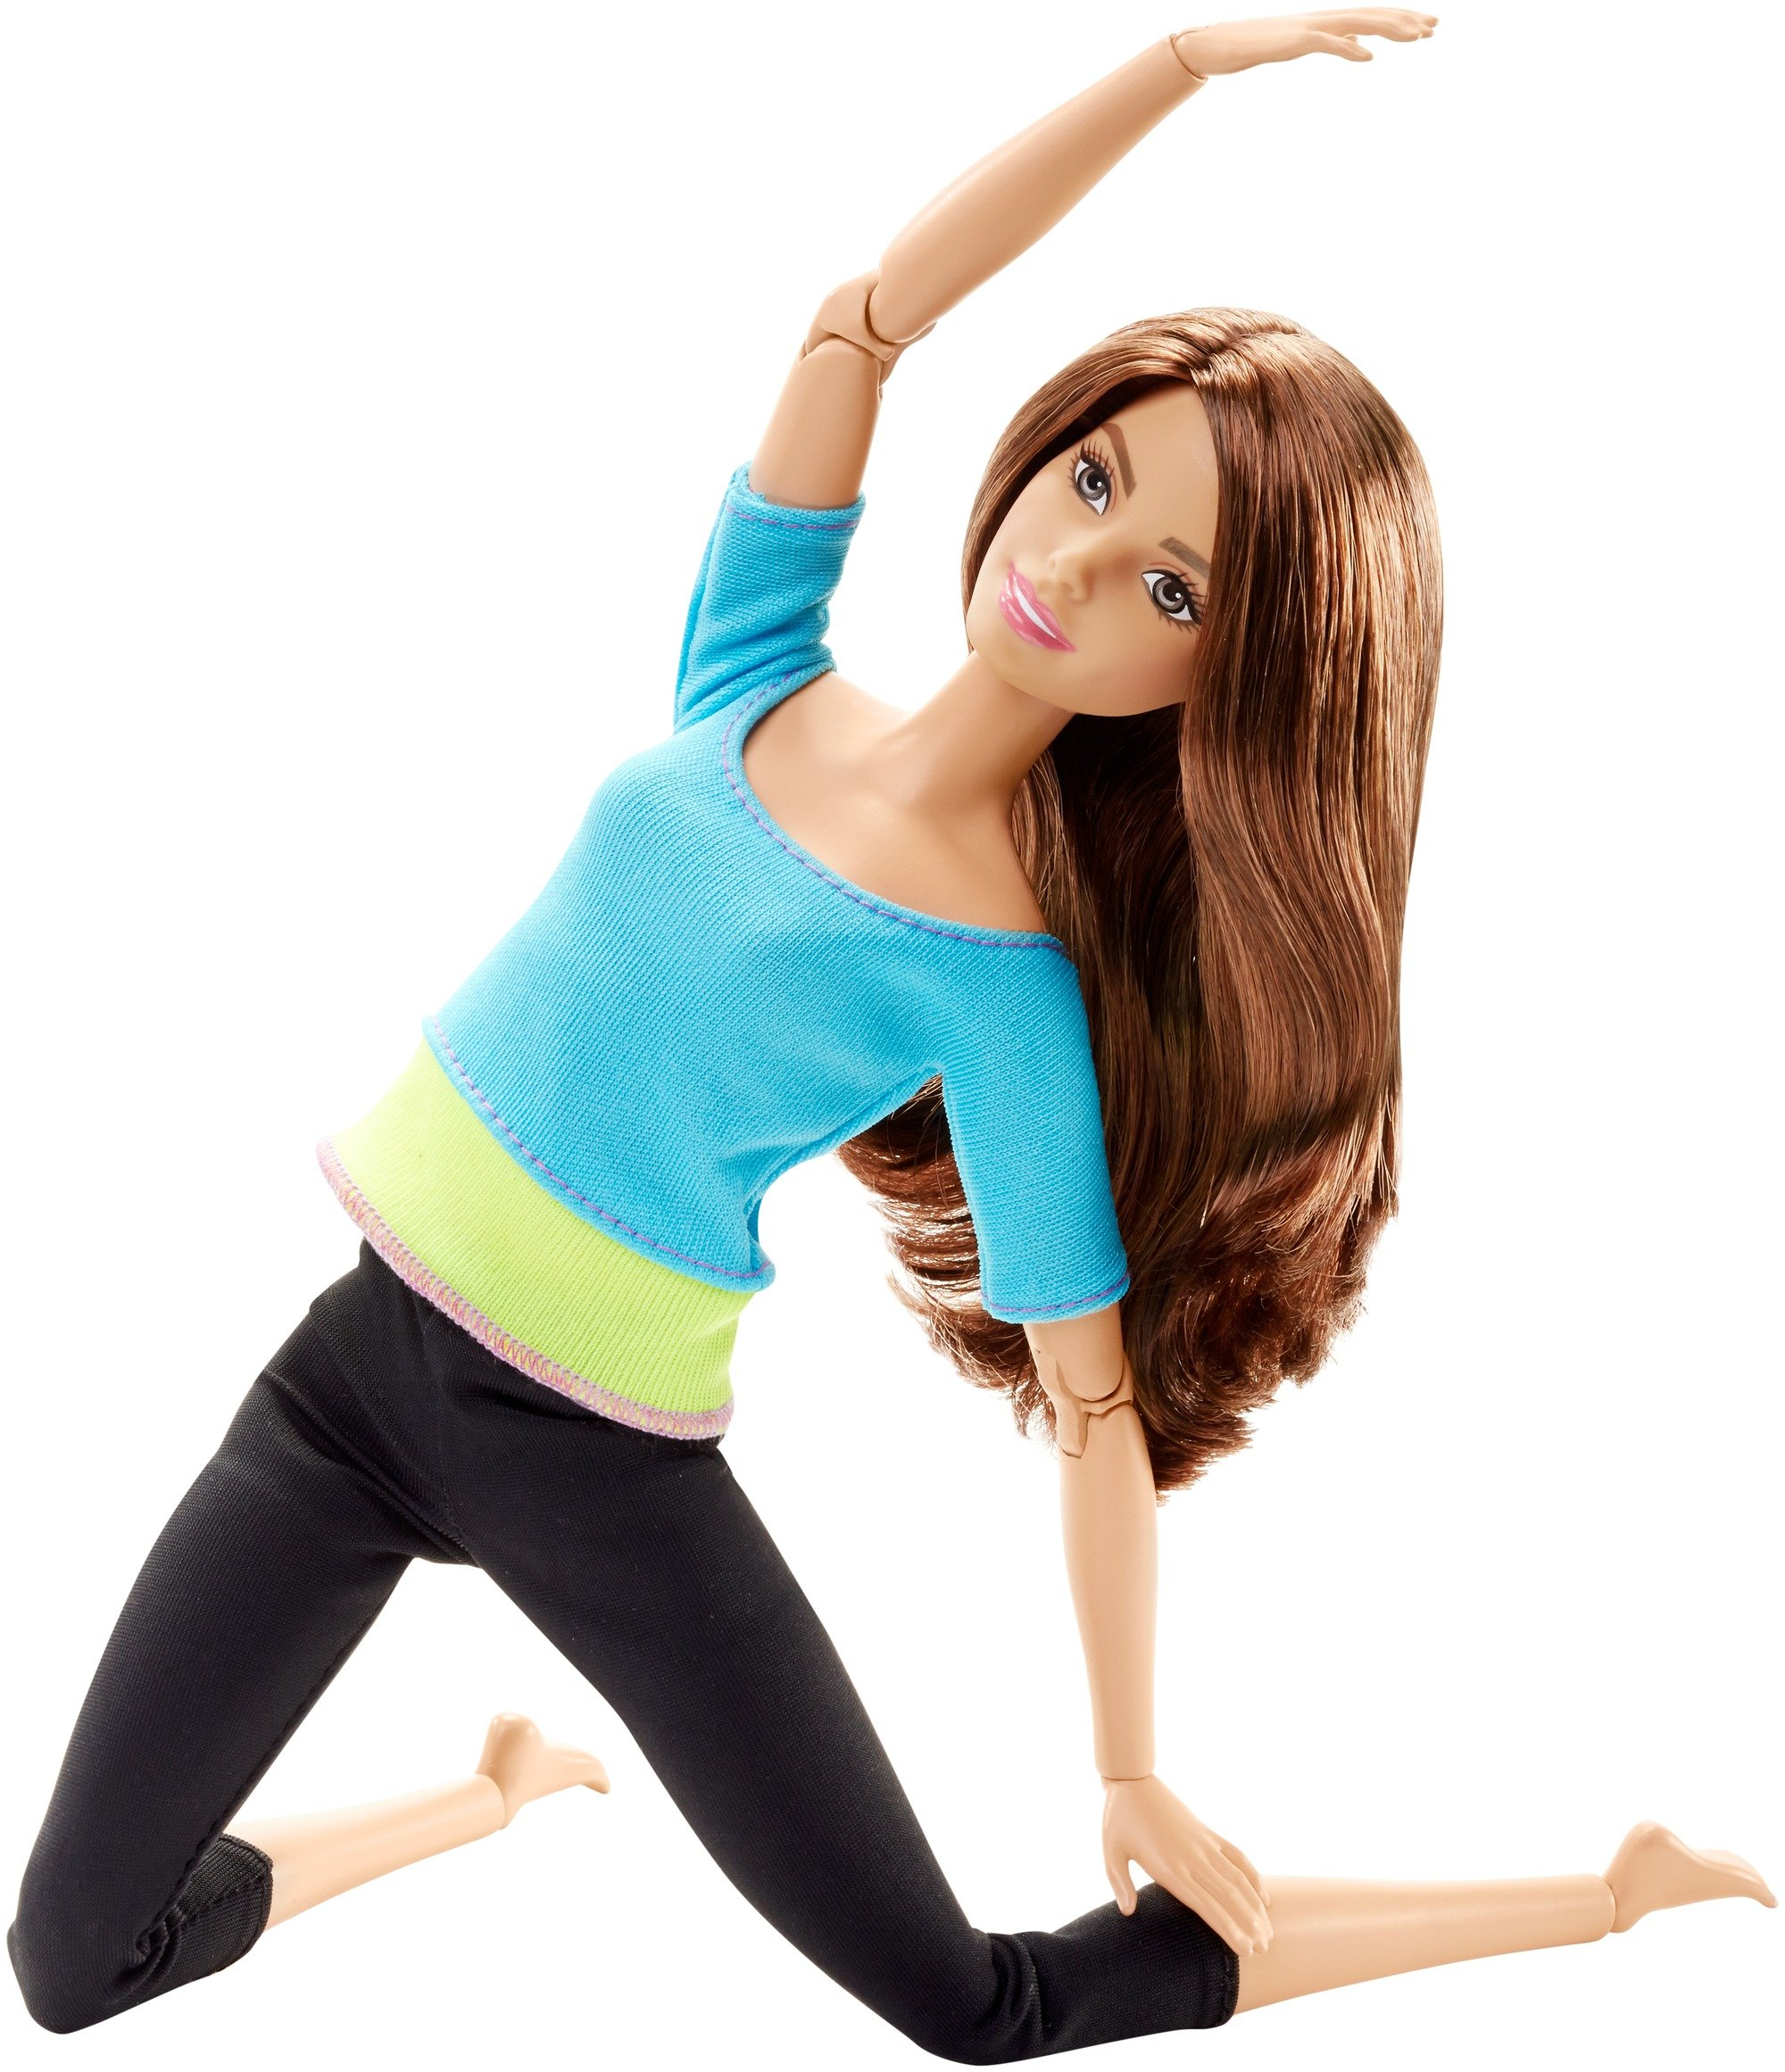 Barbie Made to Move Doll, Blue Top by Barbie (Image #3)